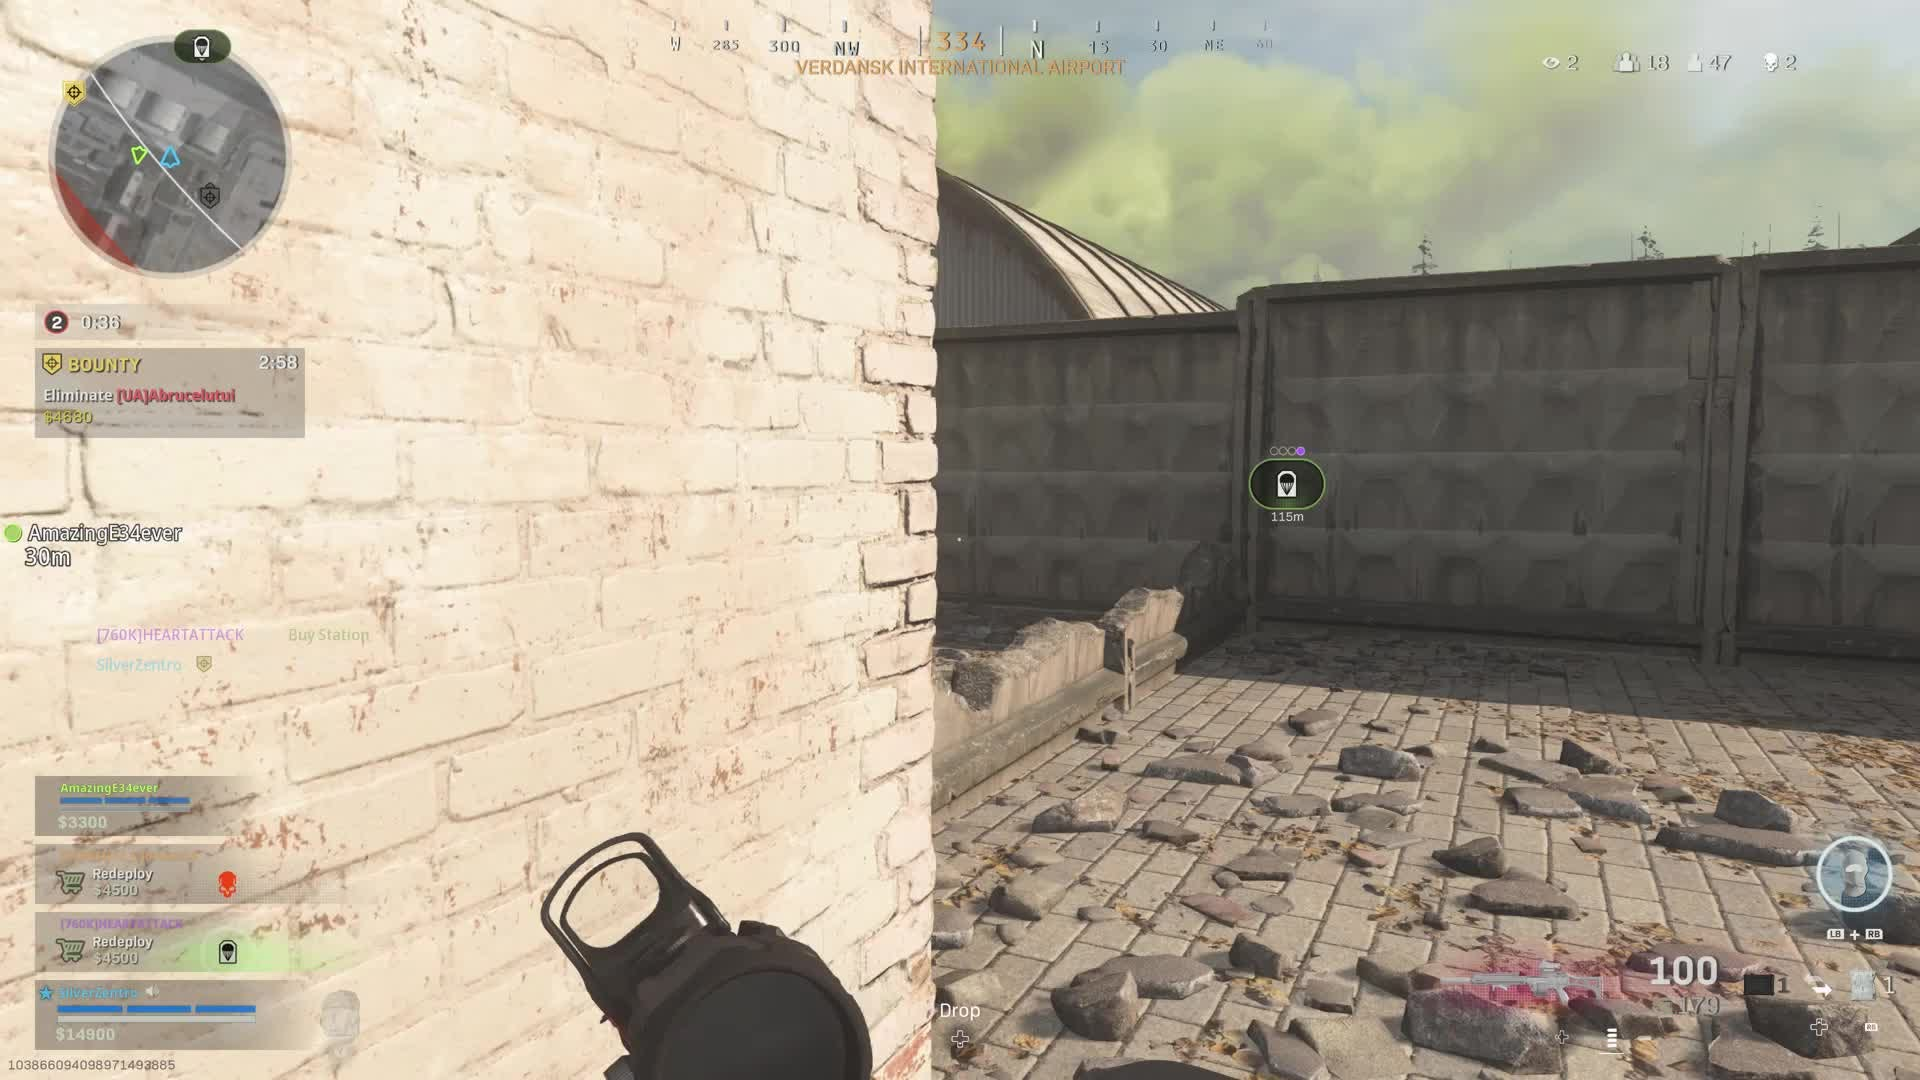 Call of Duty: General - IM A GOD! Easy 5Kills! 1v5!  video cover image 1